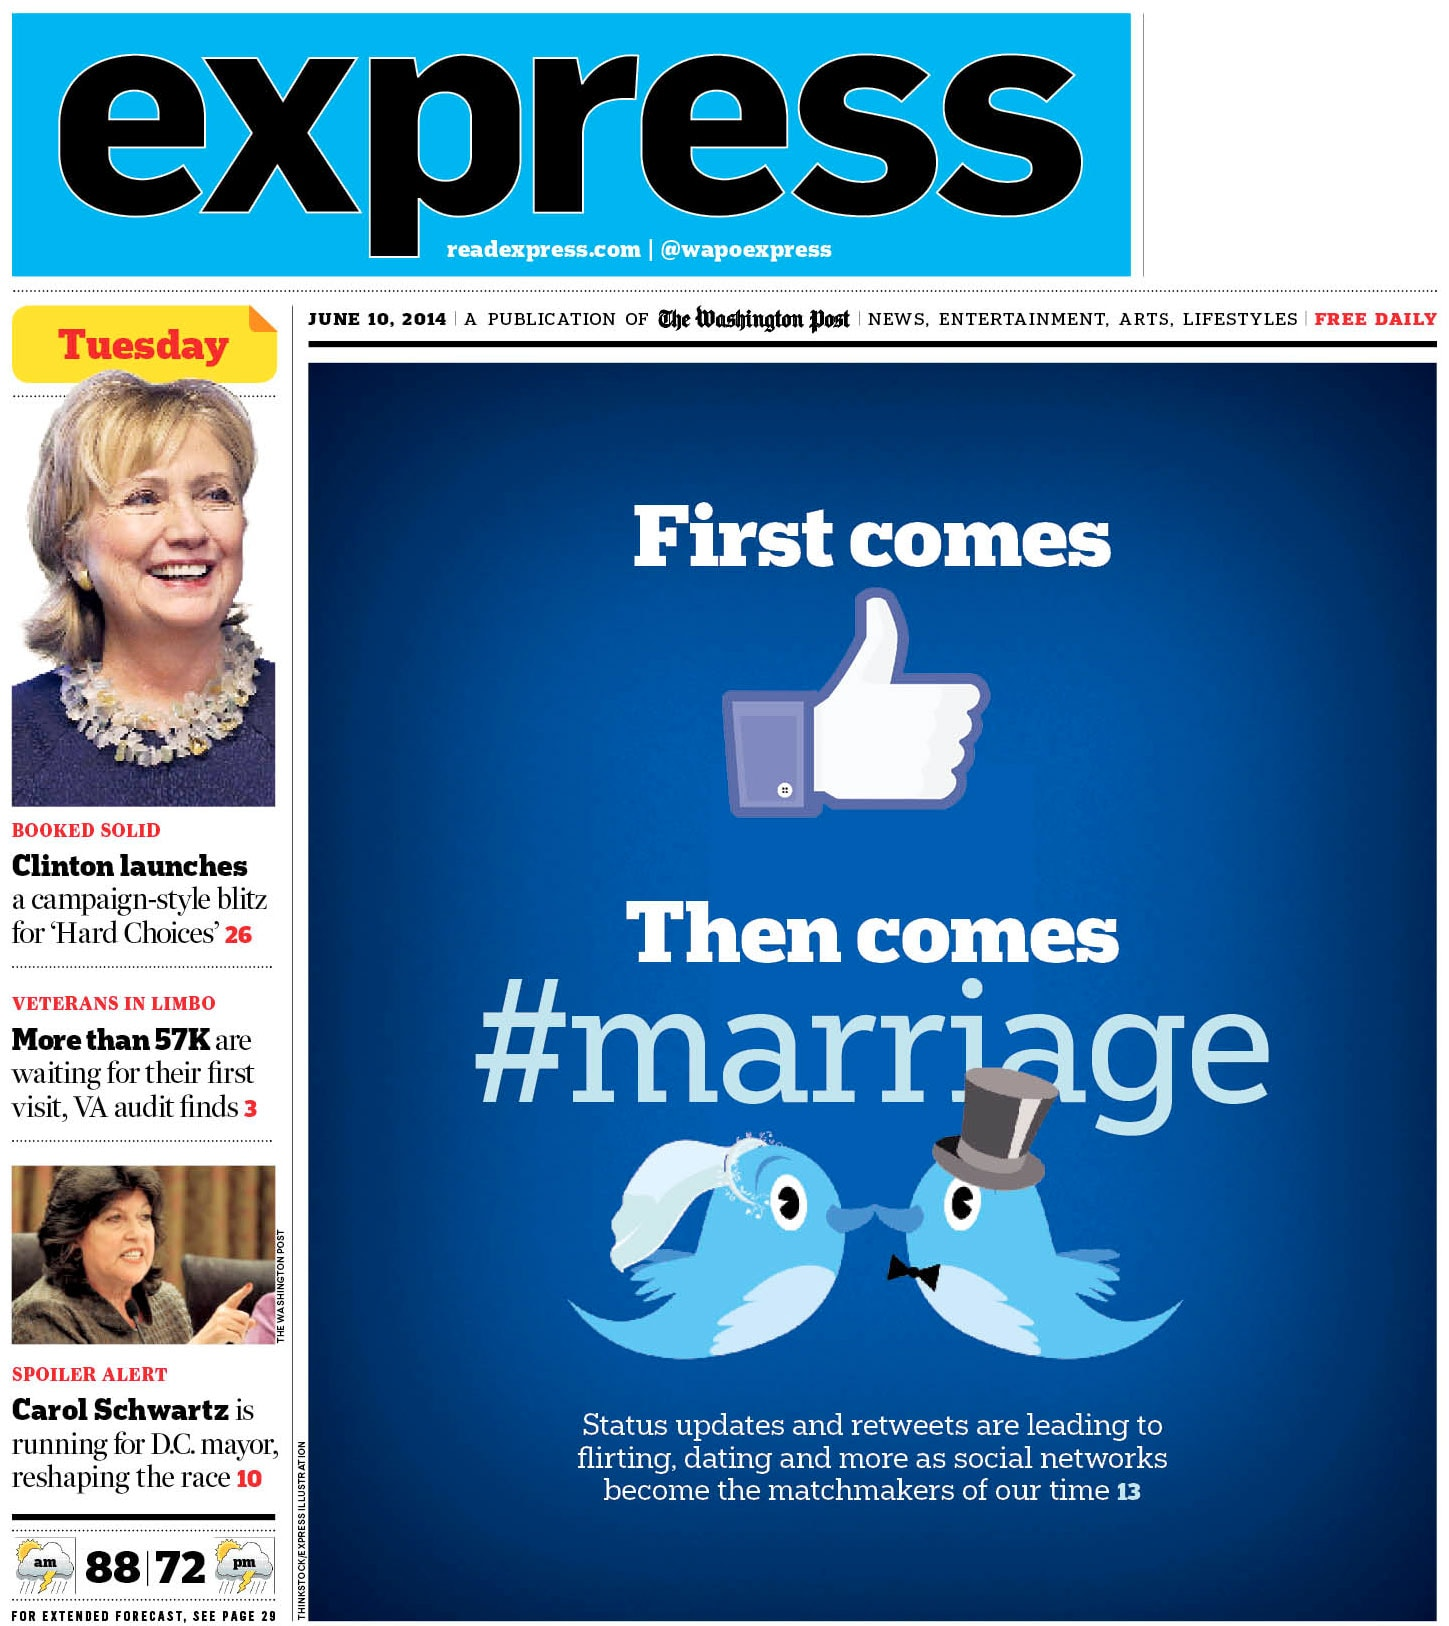 front page of the Washington Express with Twitter lovebirds